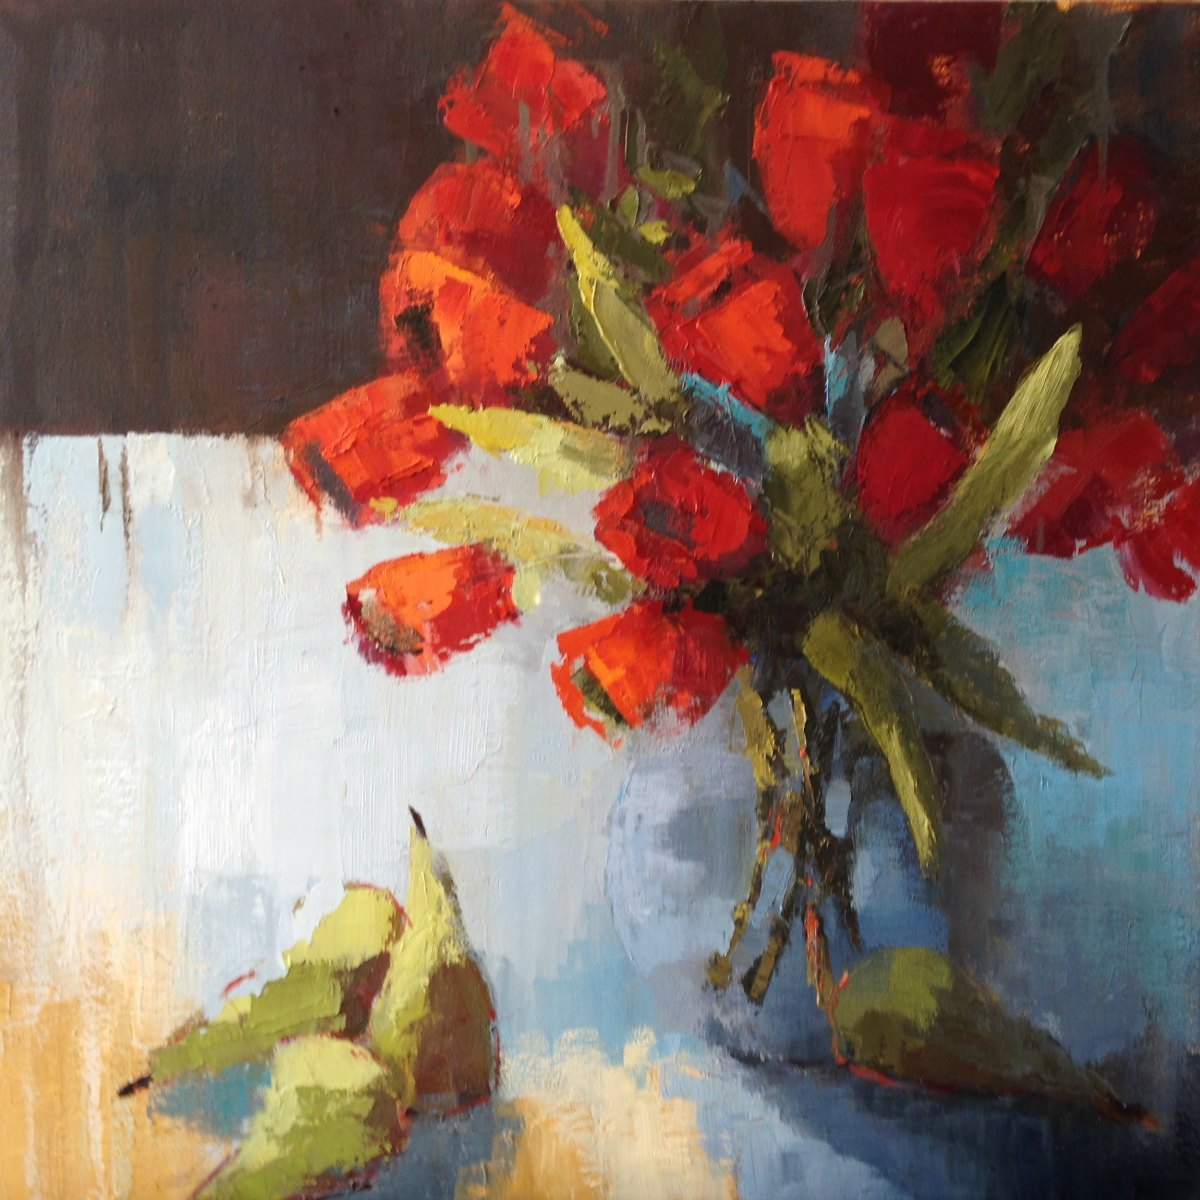 Red Tulips and Pears